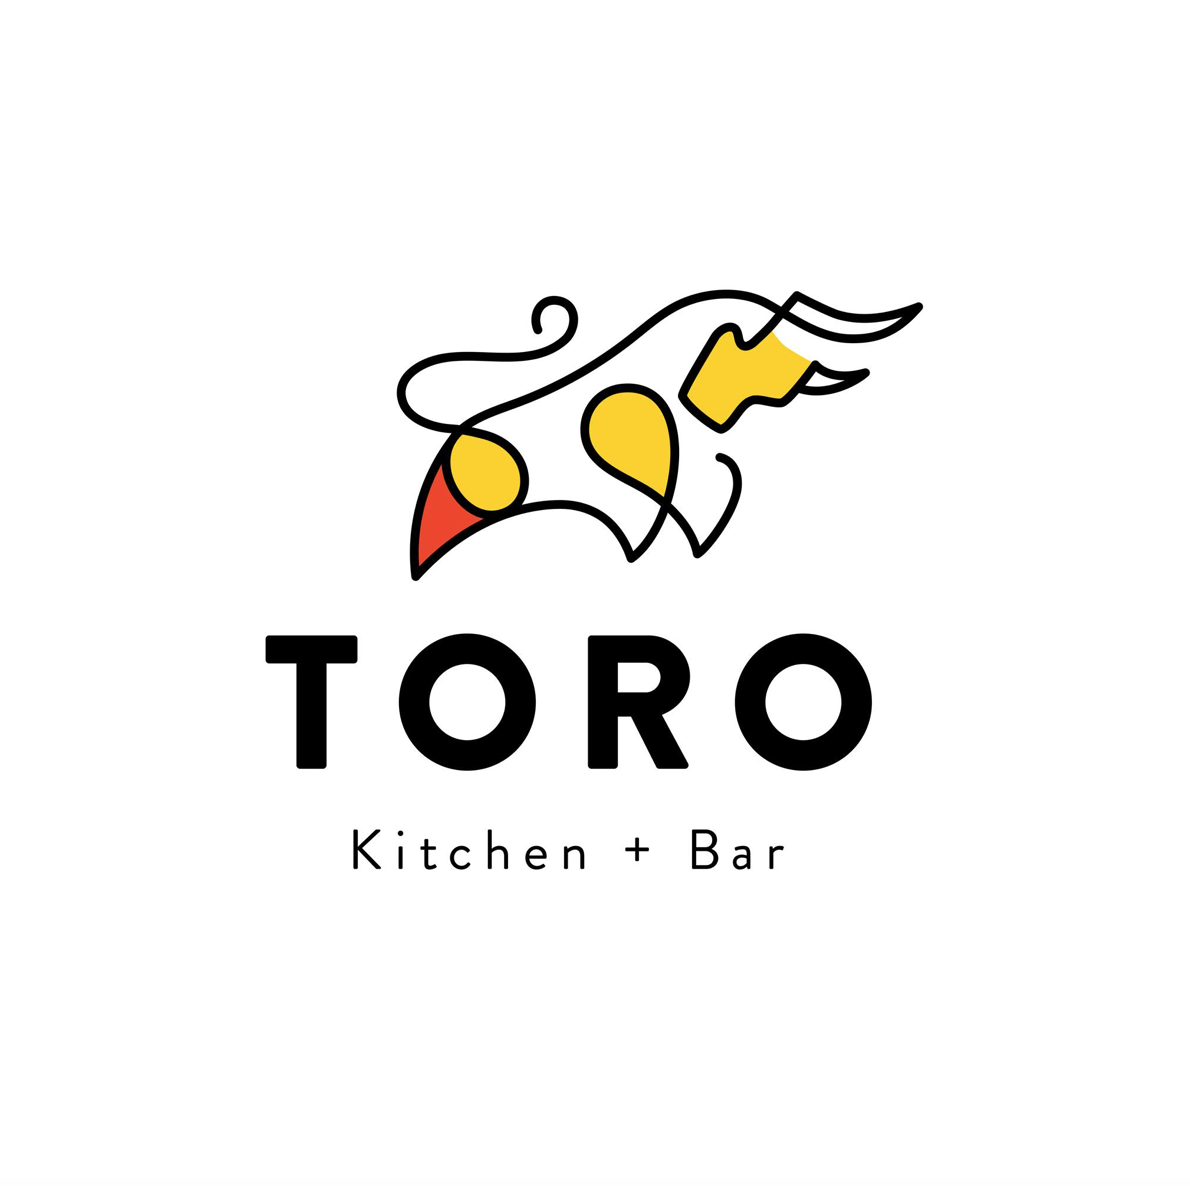 Toro Kitchen + Bar (Stone Oak) , Lunch & Dinner  115 N Loop 1604 E #1105, San Antonio, 78232  P 210-592-1075    Toro Kitchen + Bar Restaurant Week Menu    (Available Tue - Fri)